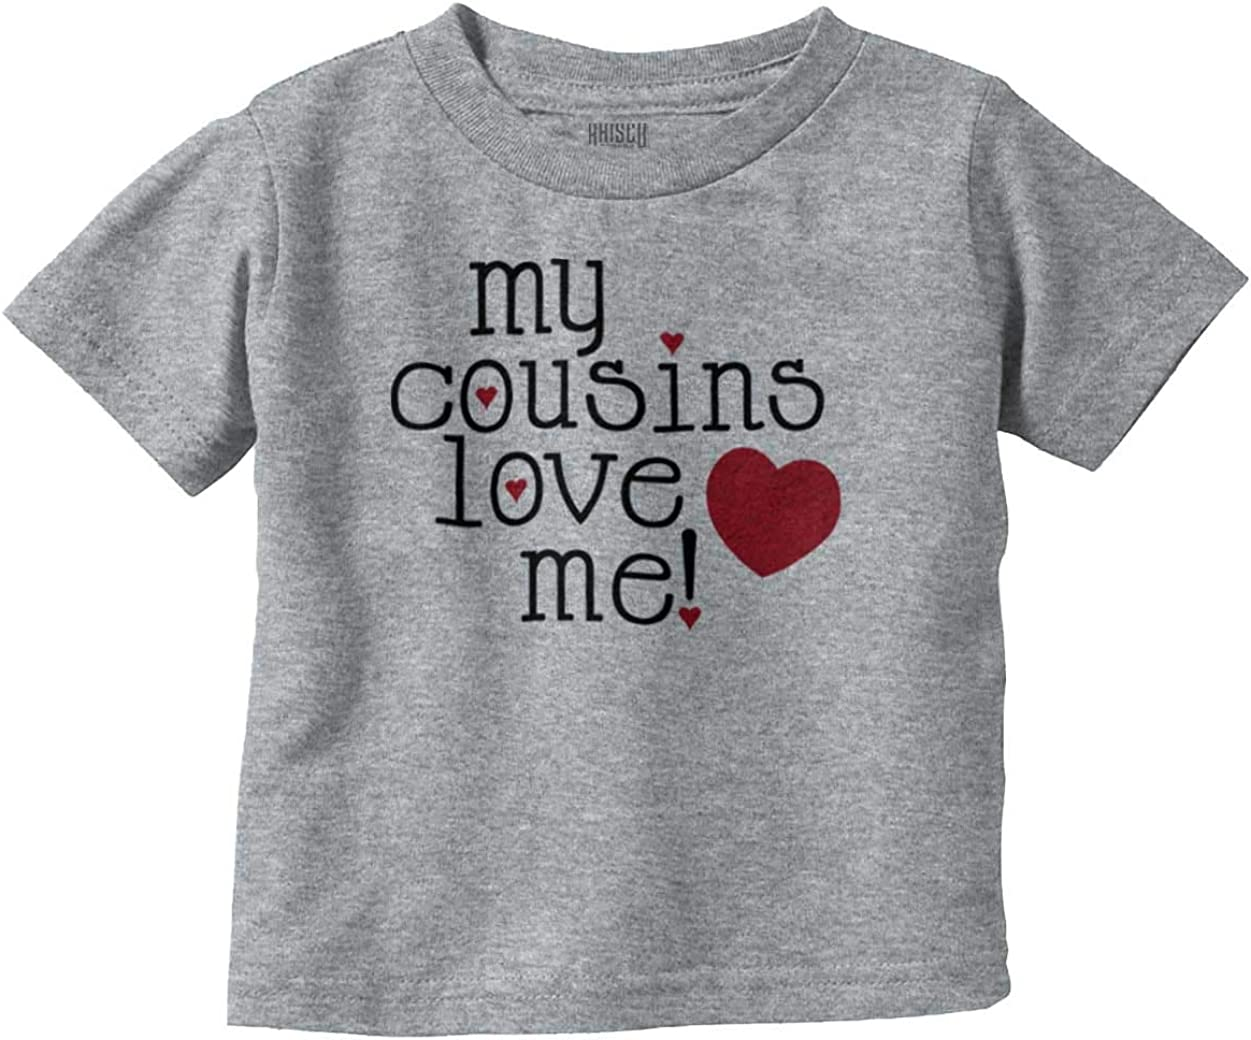 of Course I Have A Bestie Its My Cousin Toddler//Kids Short Sleeve T-Shirt